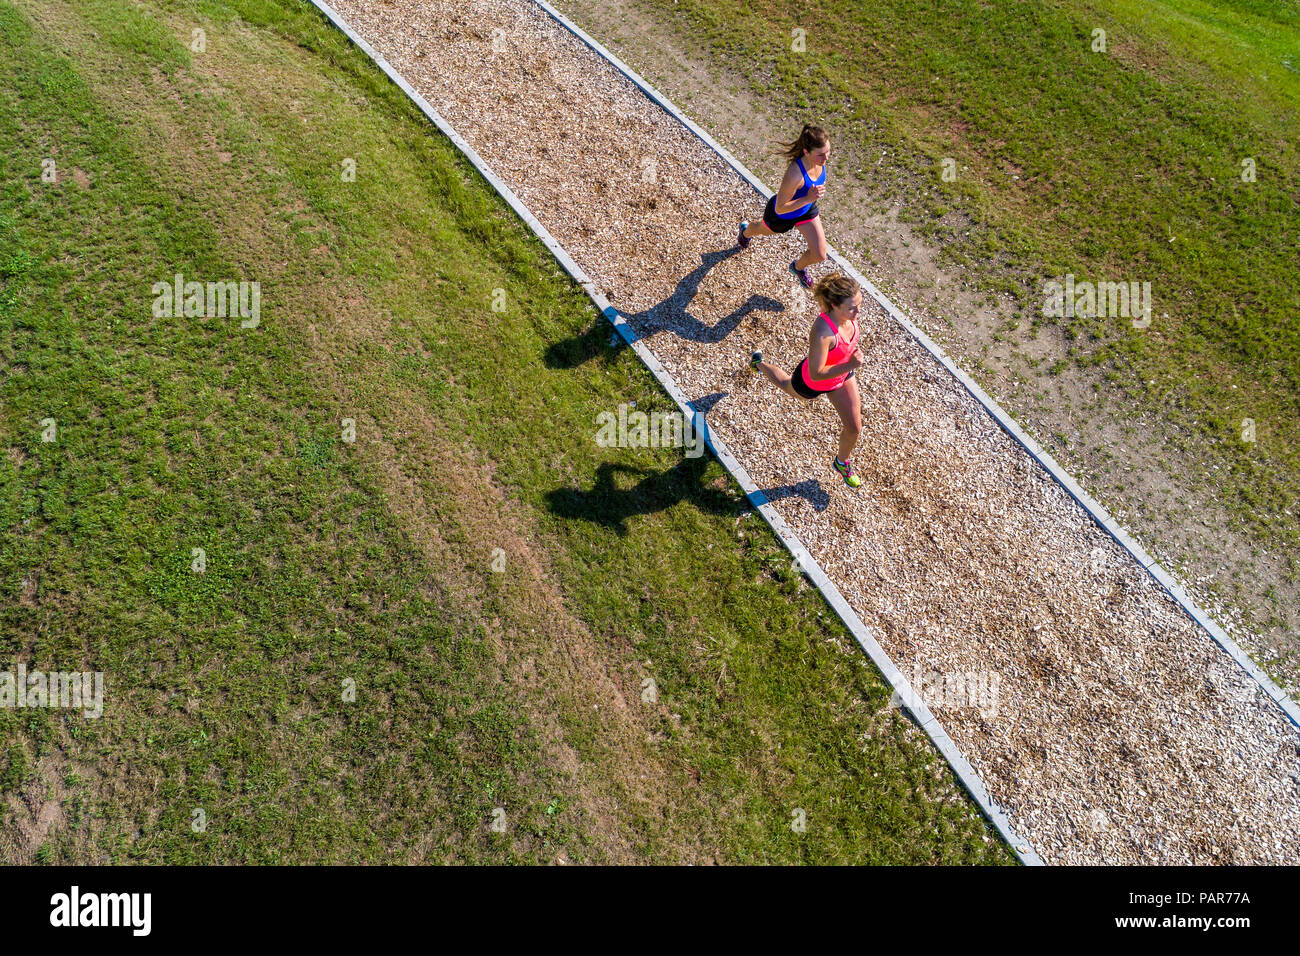 Aerial view of female joggers on woodchip trail - Stock Image